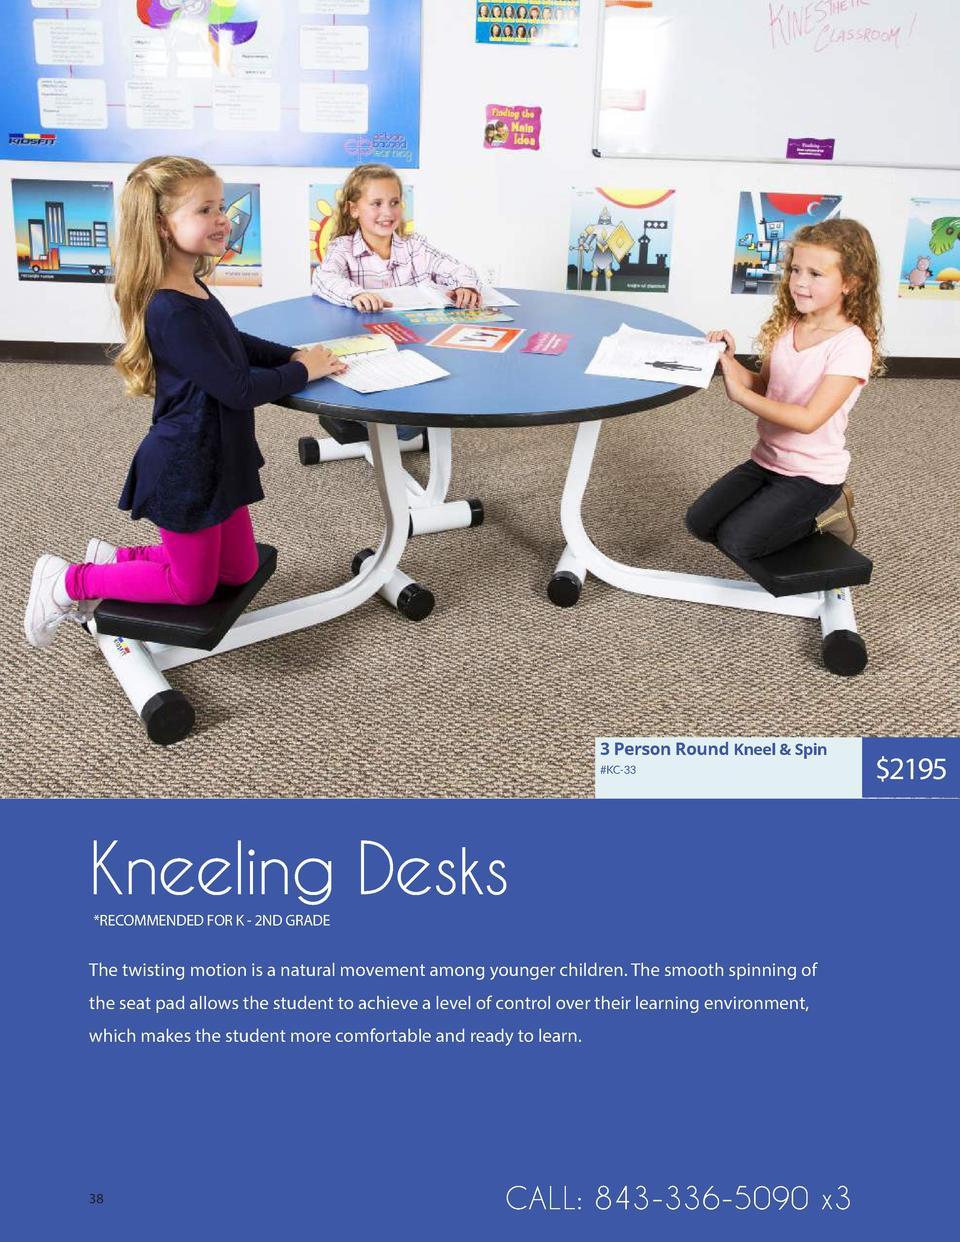 3 Person Round Kneel   Spin  KC-33  Kneeling Desks  RECOMMENDED FOR K - 2ND GRADE  The twisting motion is a natural moveme...